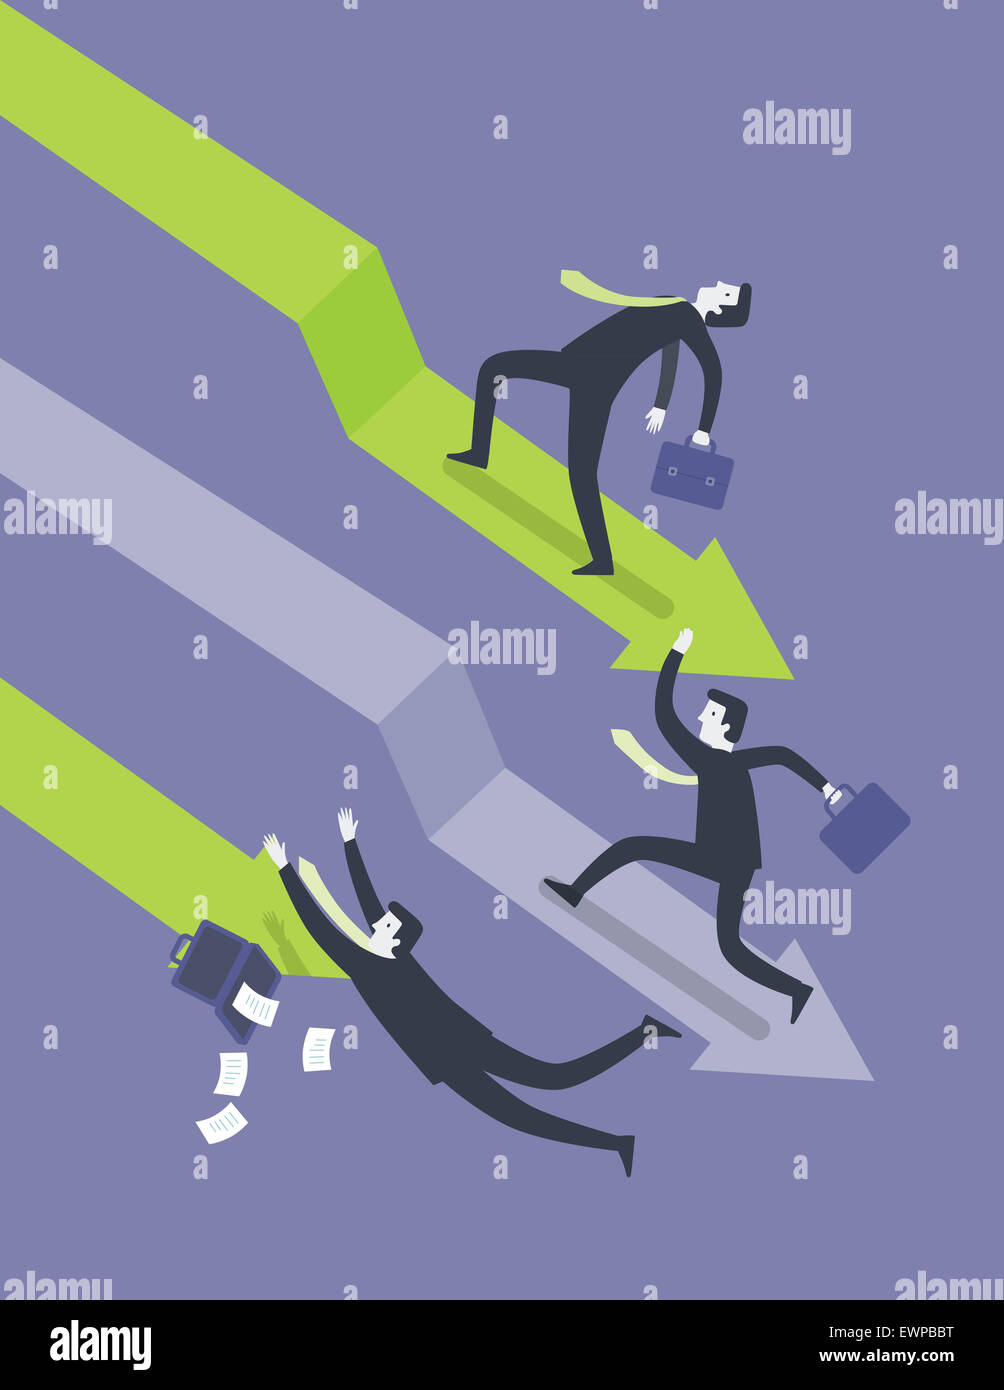 Business people struggling in recession period - Stock Image